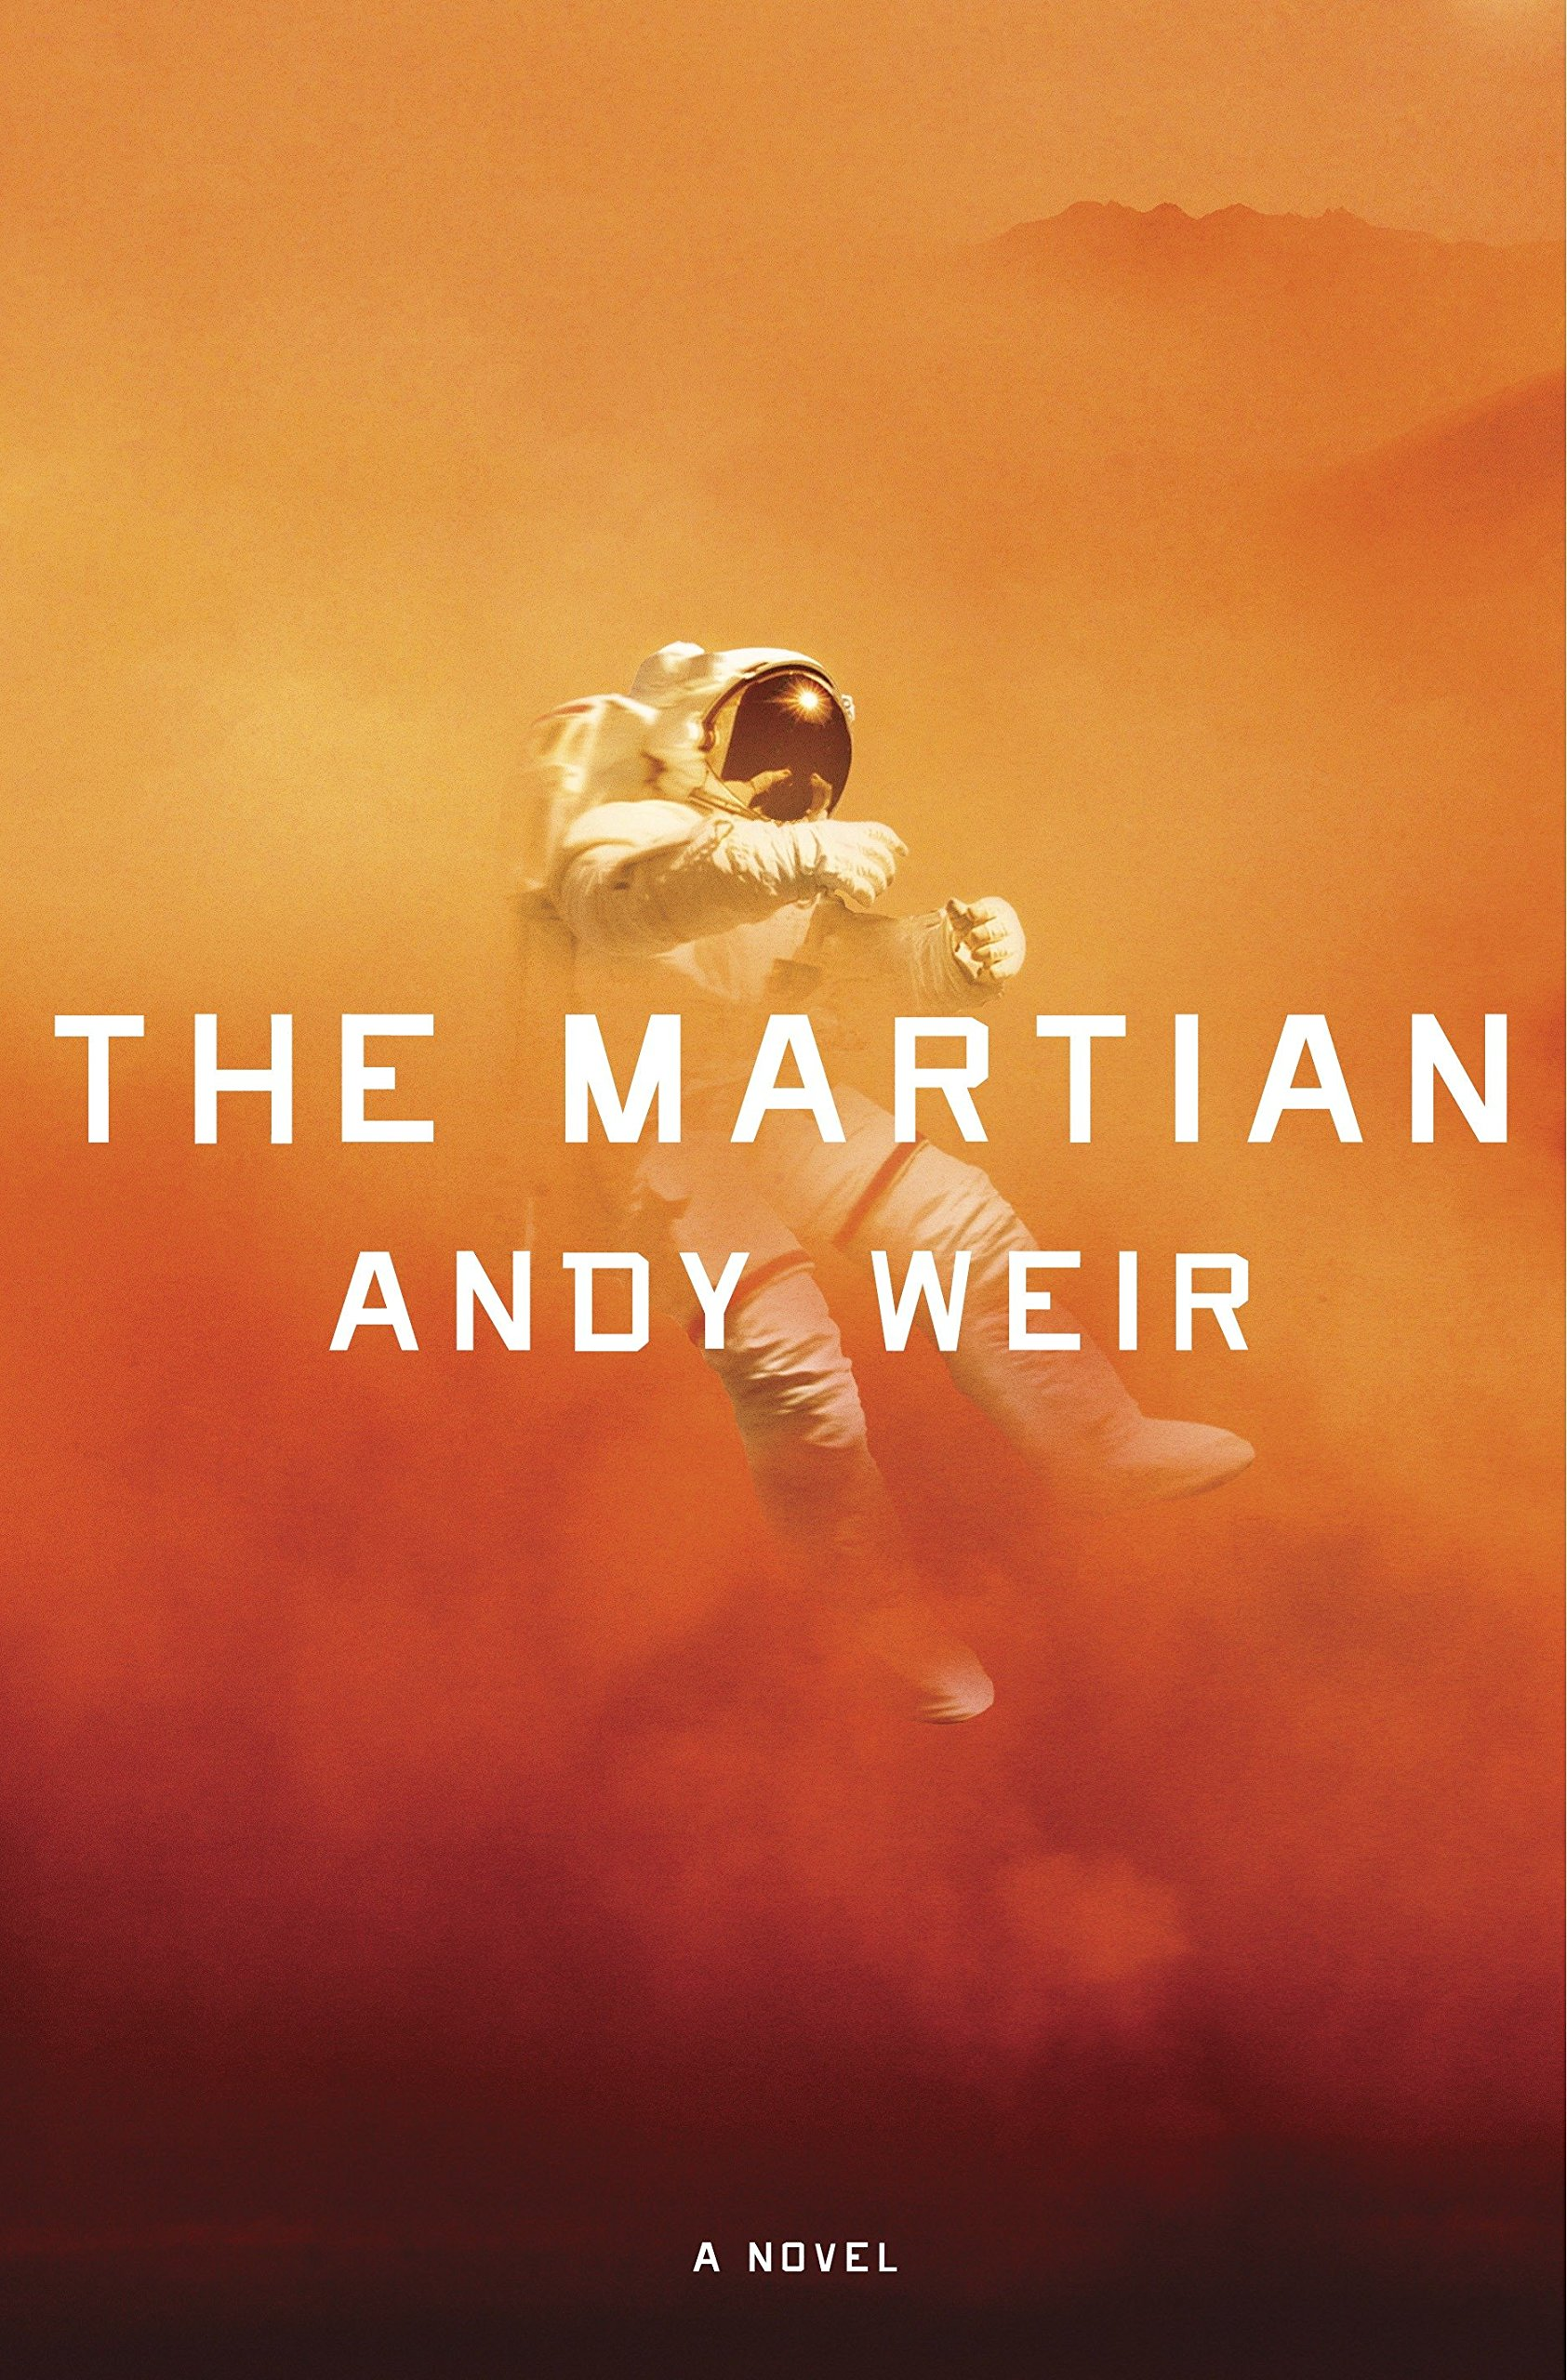 The Martian_Best Online Resources & Books to Help Kids Process Everything Happening in 2020